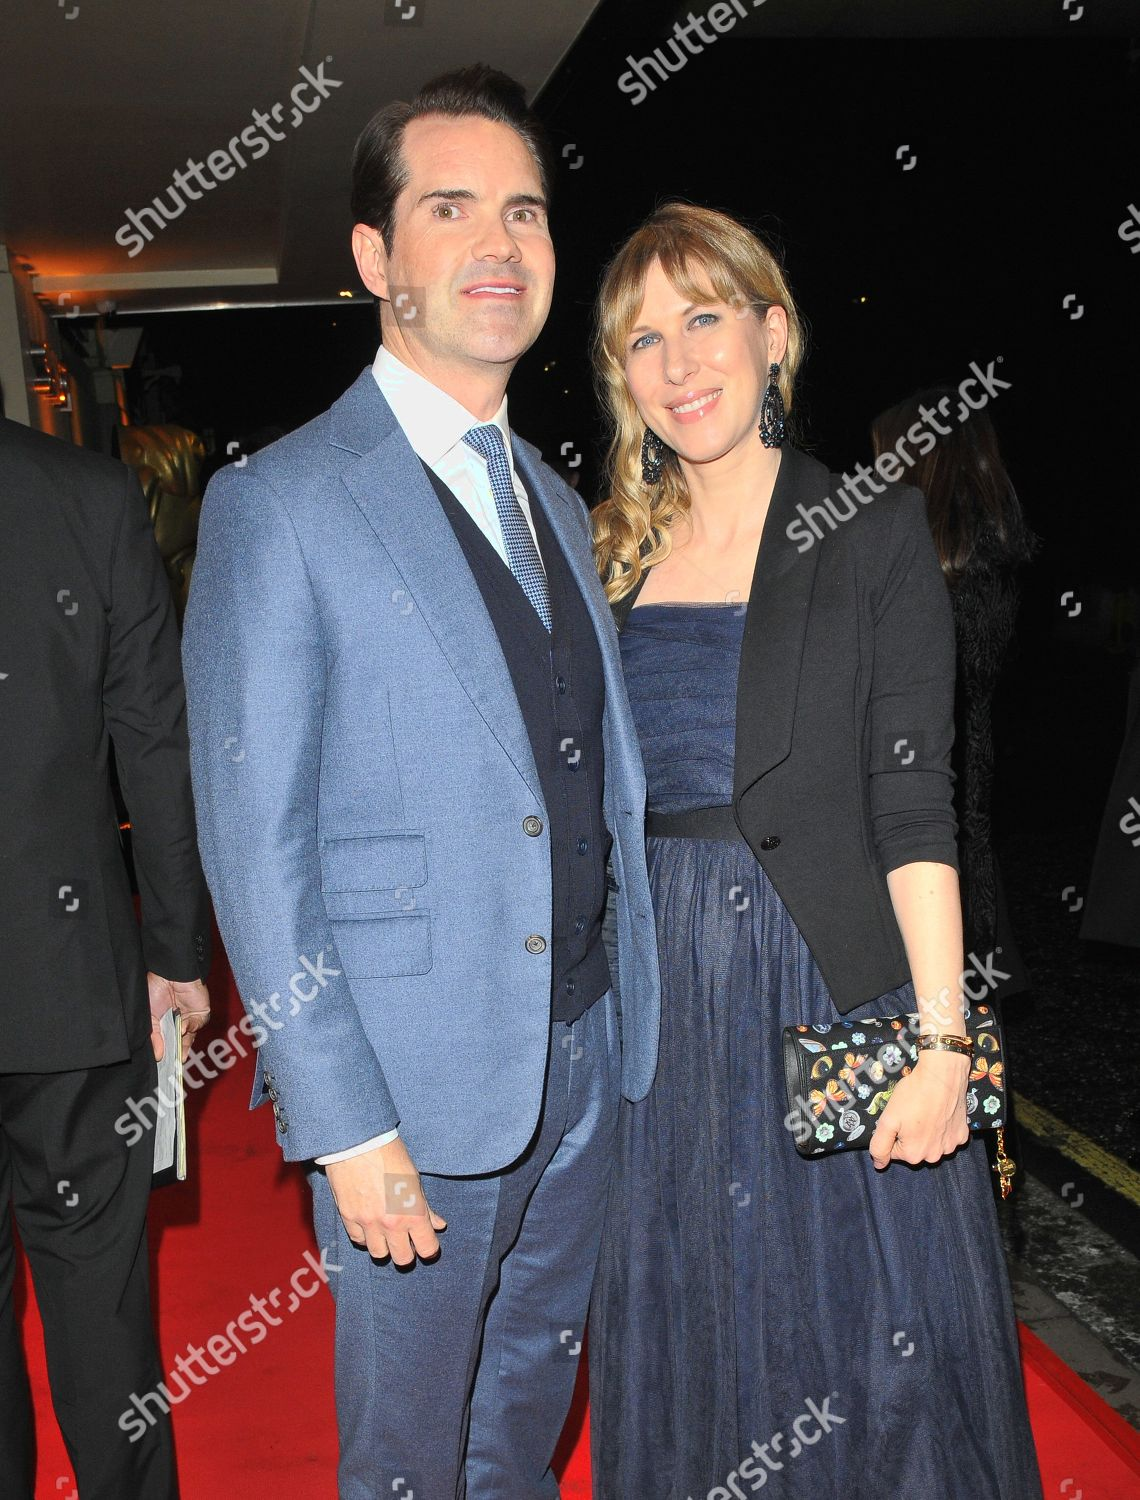 Jimmy Carr Karoline Copping Editorial Stock Photo Stock Image Shutterstock Do you want to learn more about karoline copping? https www shutterstock com editorial image editorial baftas fundraising gala dinner at the savoy hotel london uk 08 feb 2019 10099915k